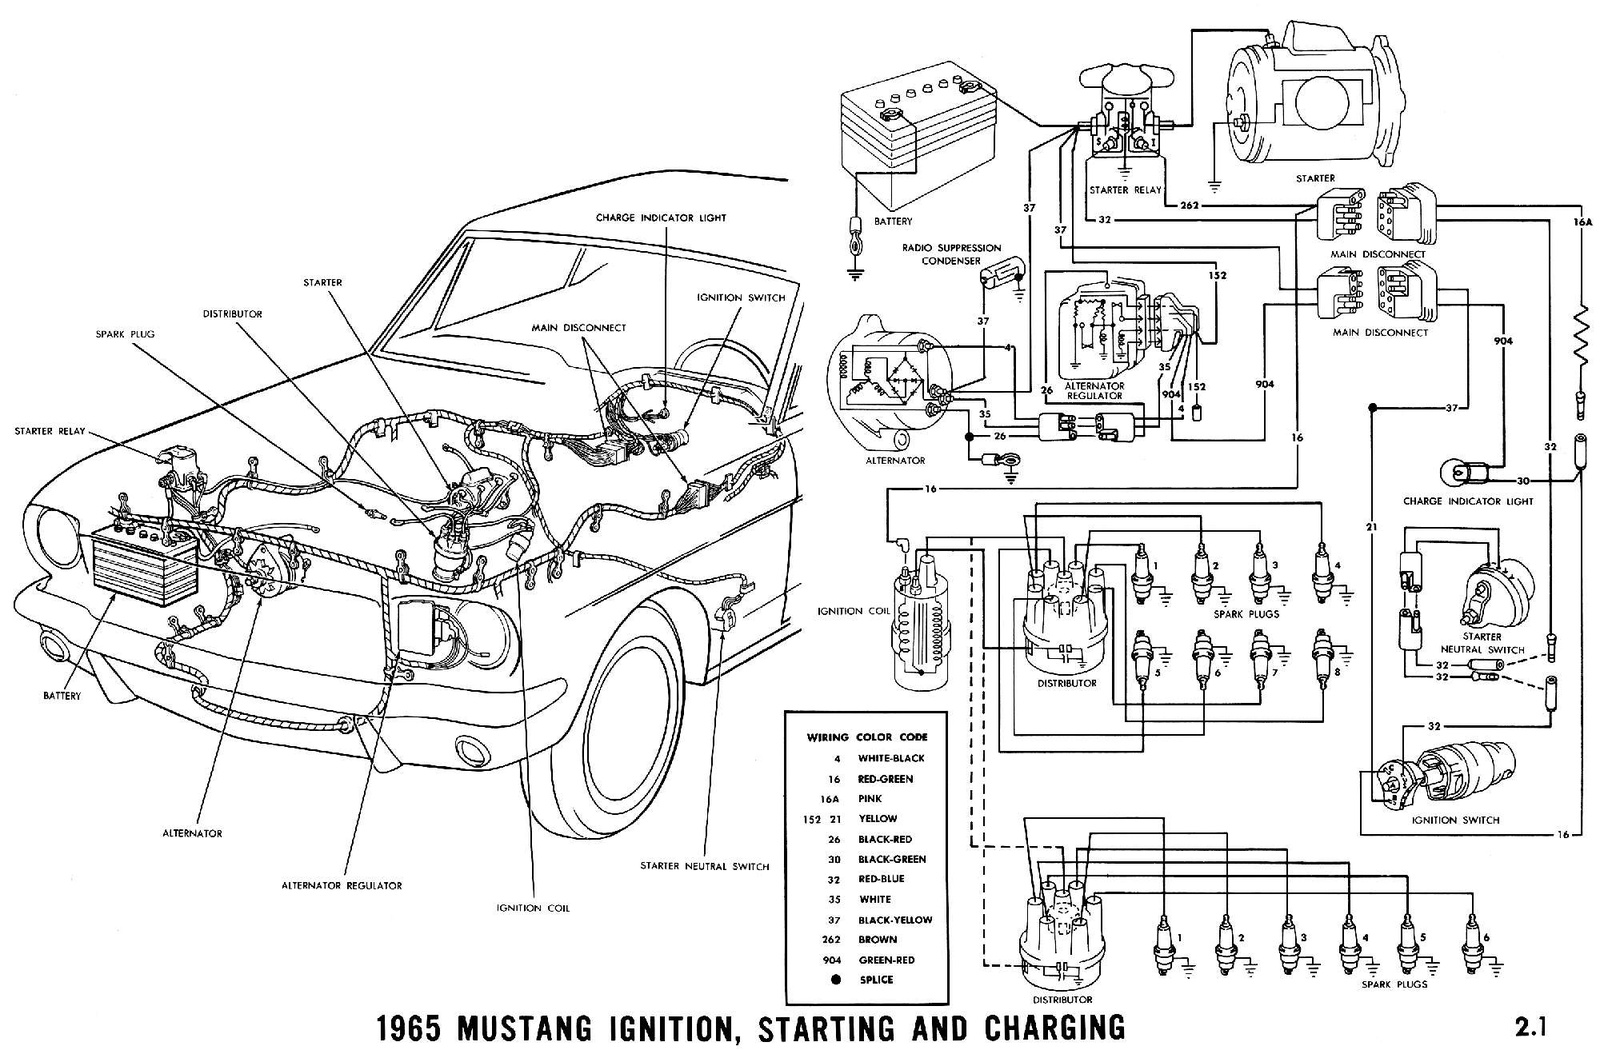 ford mustang questions how to install electric choke wire on rh cargurus com 1968 ford mustang ignition wiring diagram 1968 Mustang Exhaust